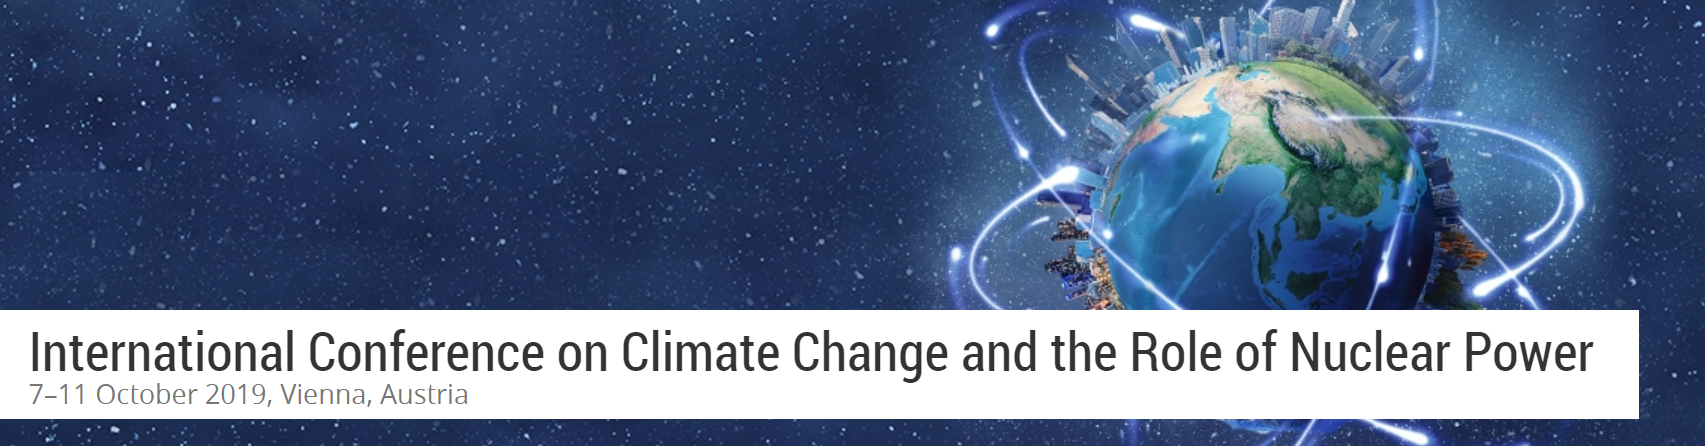 International Conference on Climate Change and the Role of Nuclear Power